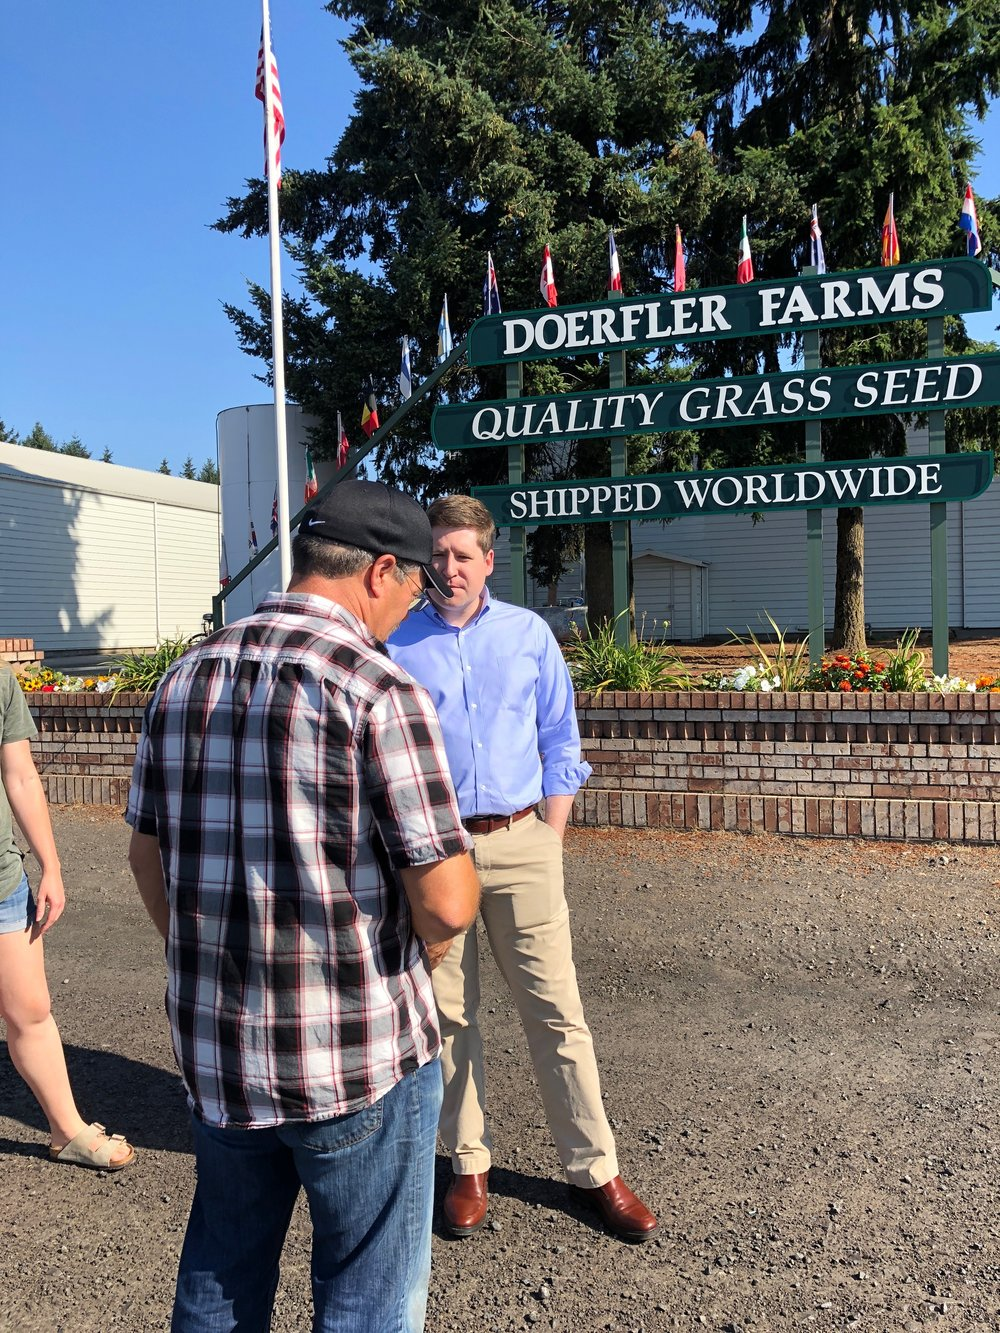 Speaking with Kent Doerfler outside of his grass seed packaging facility.